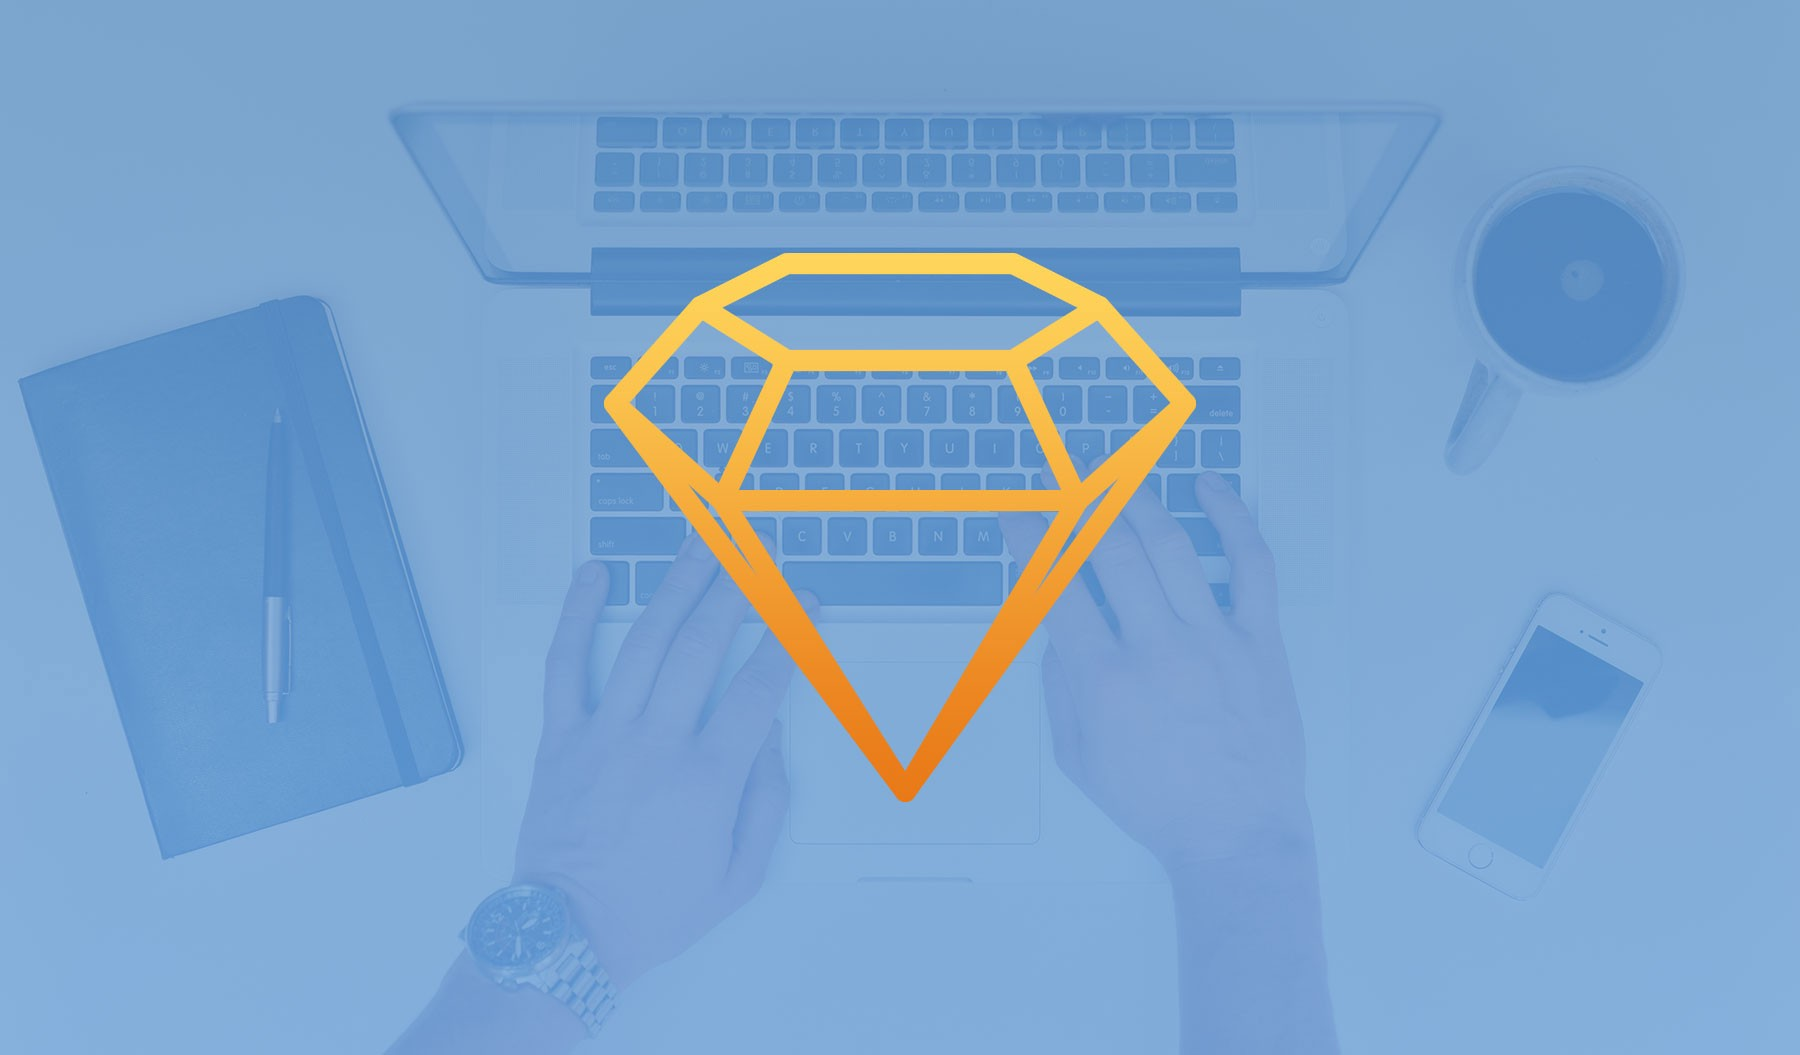 The Sketch shortcuts you didn't know about - Design + Sketch - Medium